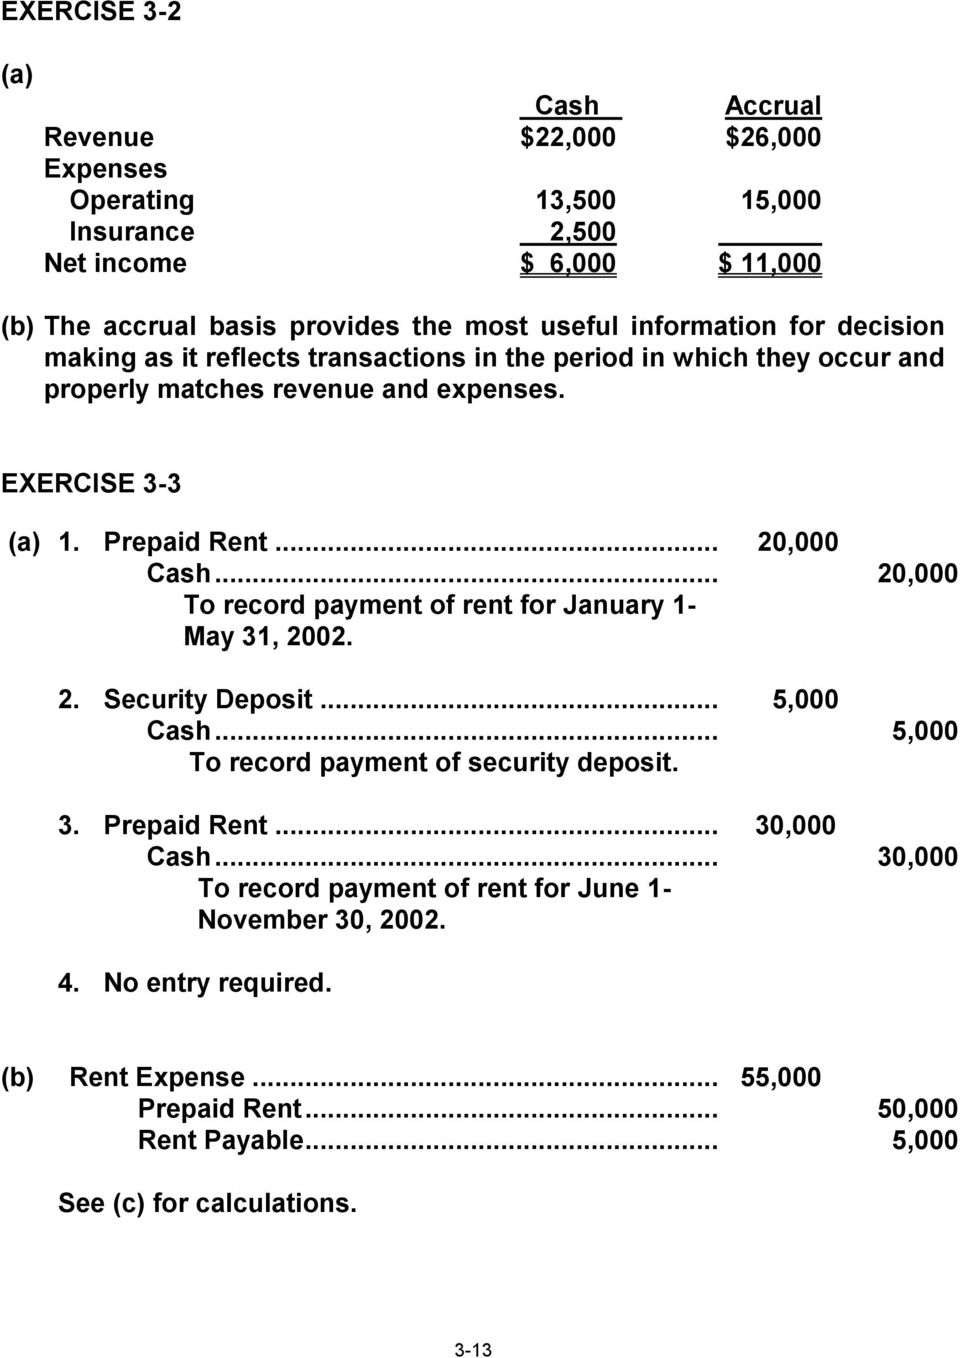 .. 20,000 Cash... 20,000 To record payment of rent for January 1- May 31, 2002. 2. Security Deposit... 5,000 Cash... 5,000 To record payment of security deposit. 3. Prepaid Rent.